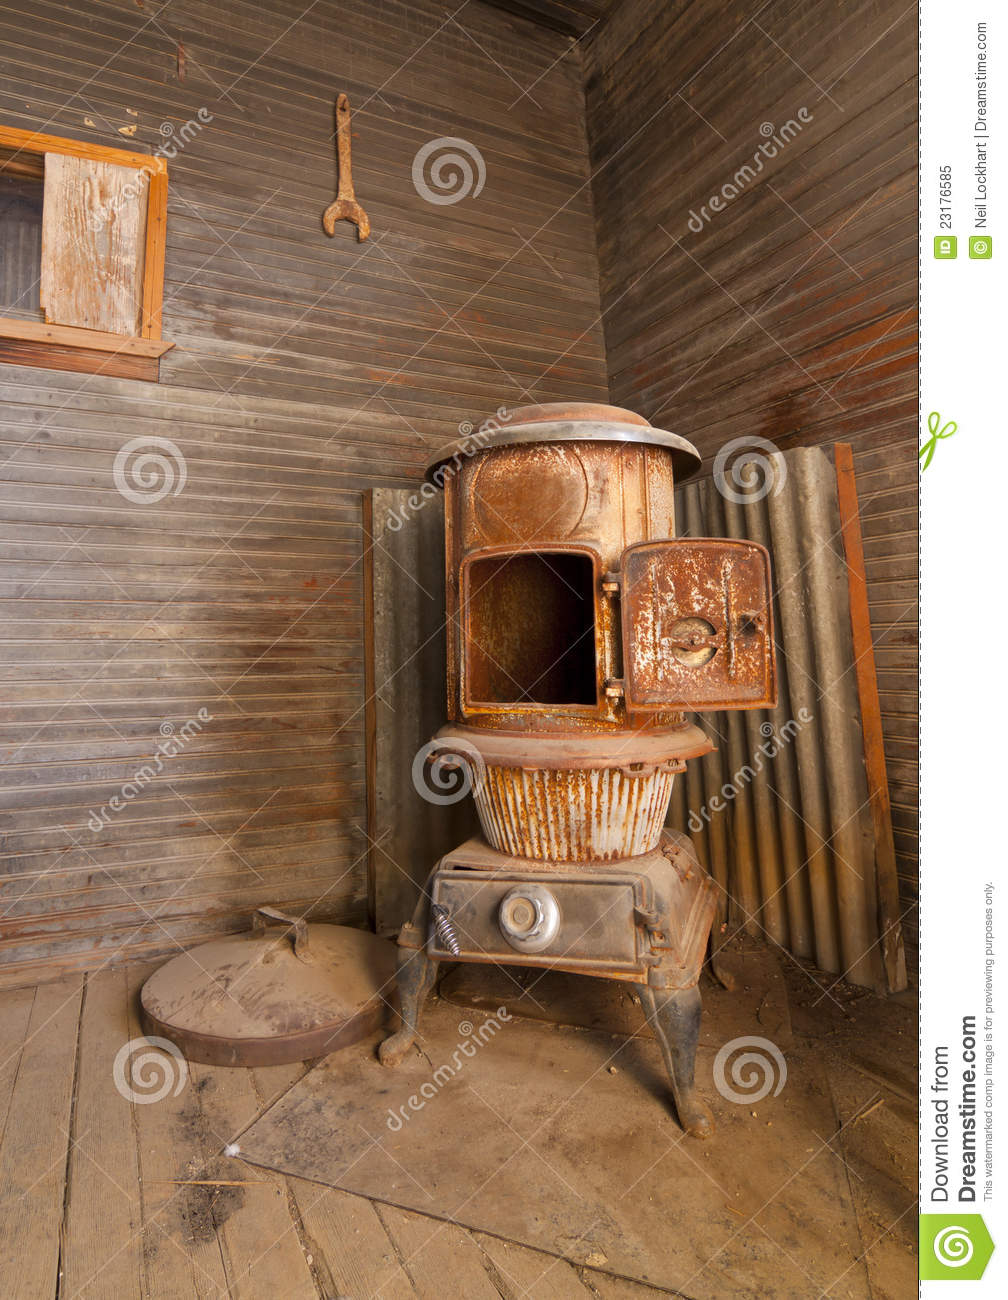 Pot Bellied Stove Royalty Free Stock Photo Image 23176585